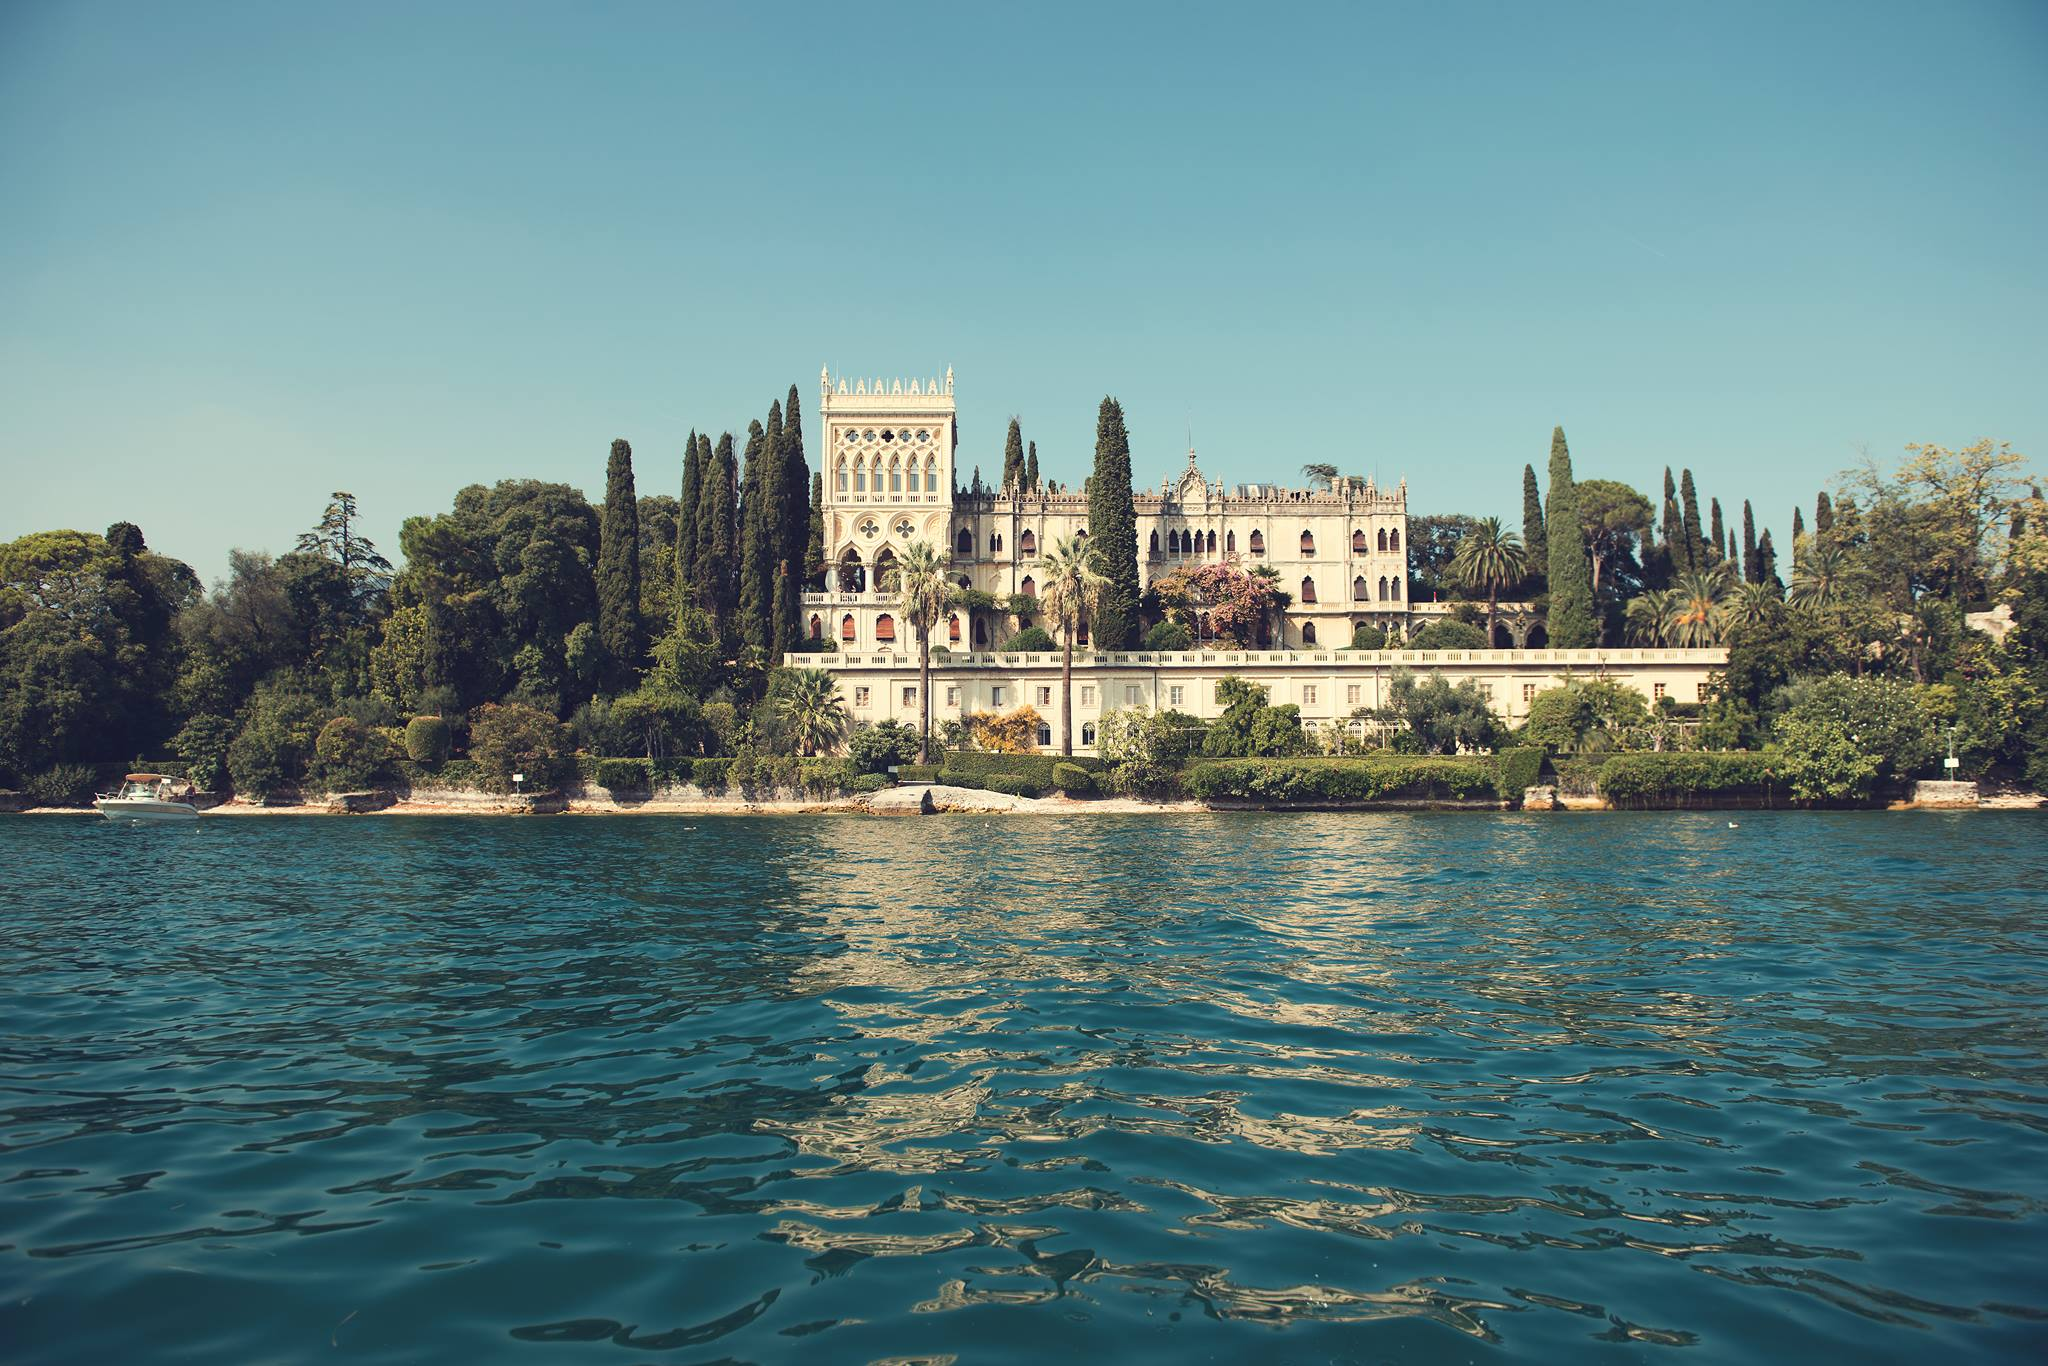 8-isola-borghese-wedding-at-lake-garda-matrimonio-sul-lago-di-garda